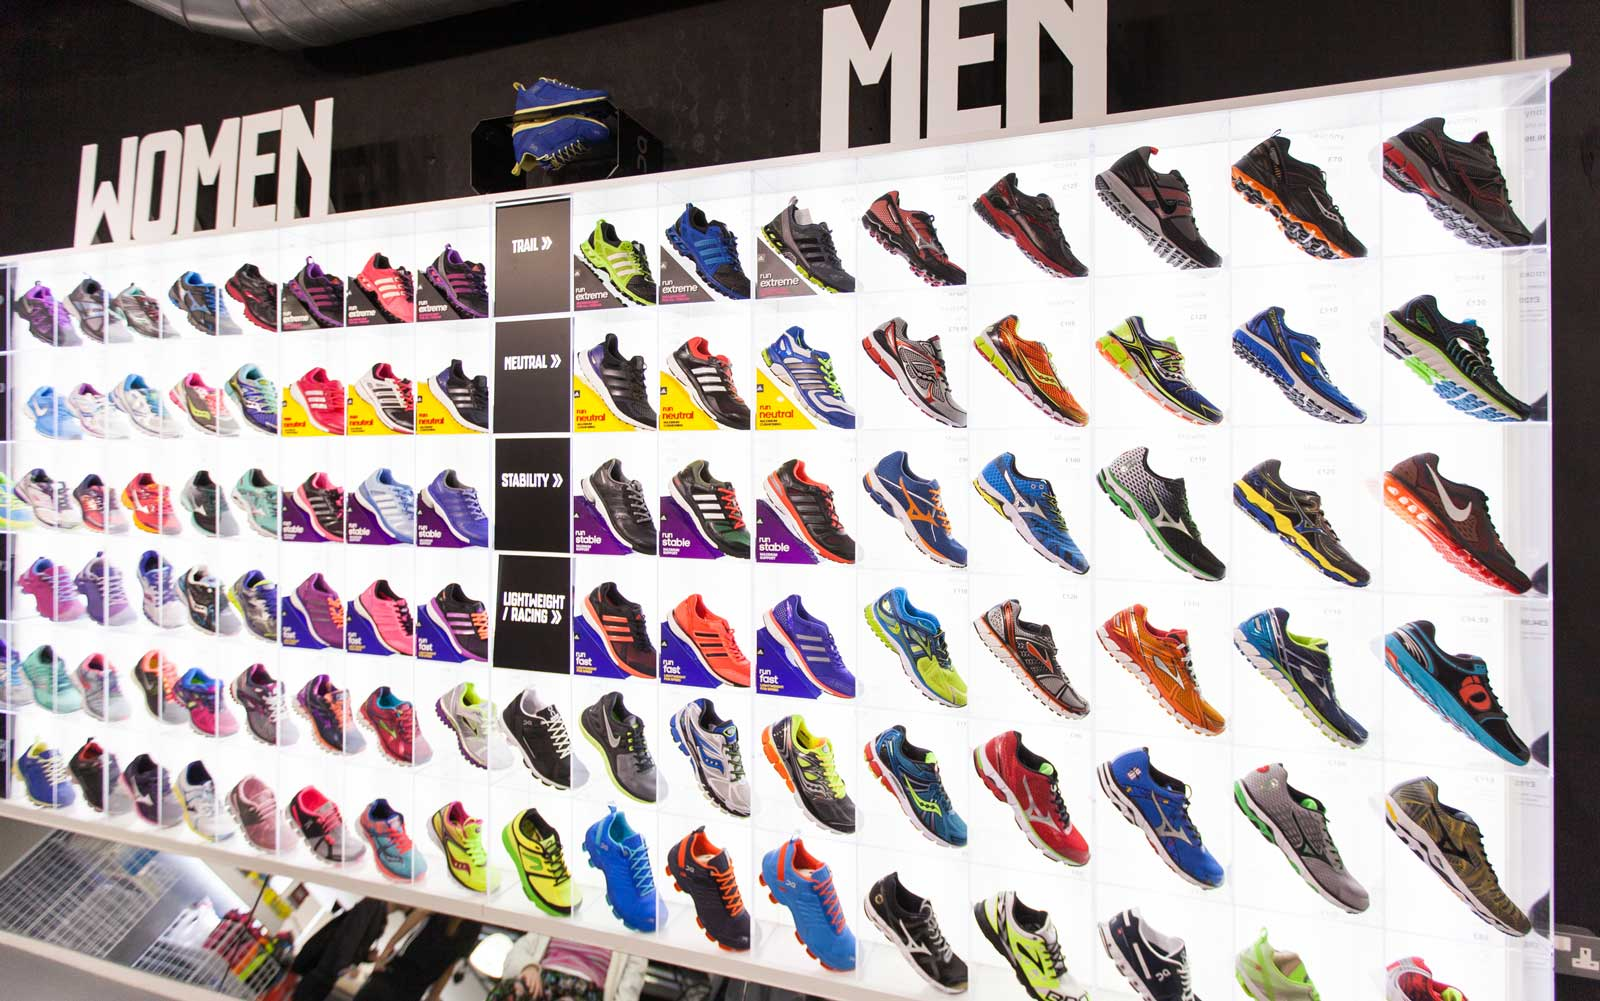 Th running wOrks Shoe wall